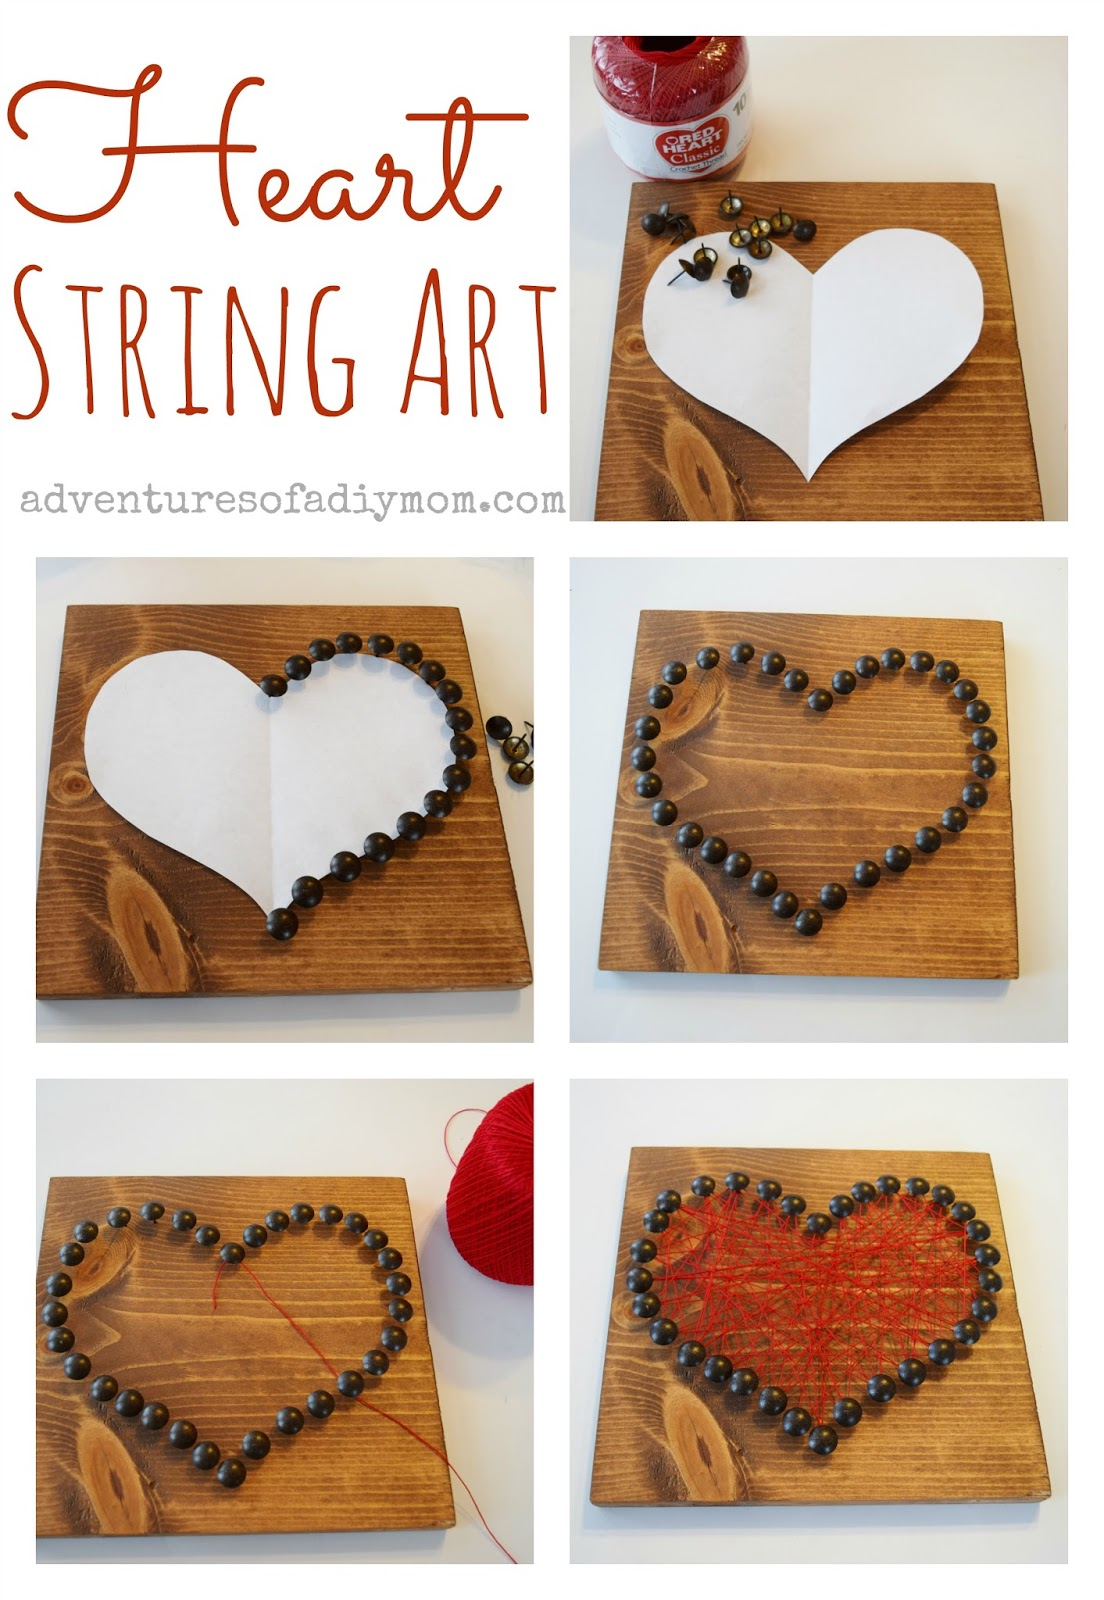 How to Make Valentines Heart String Art with Upholstery Tacks